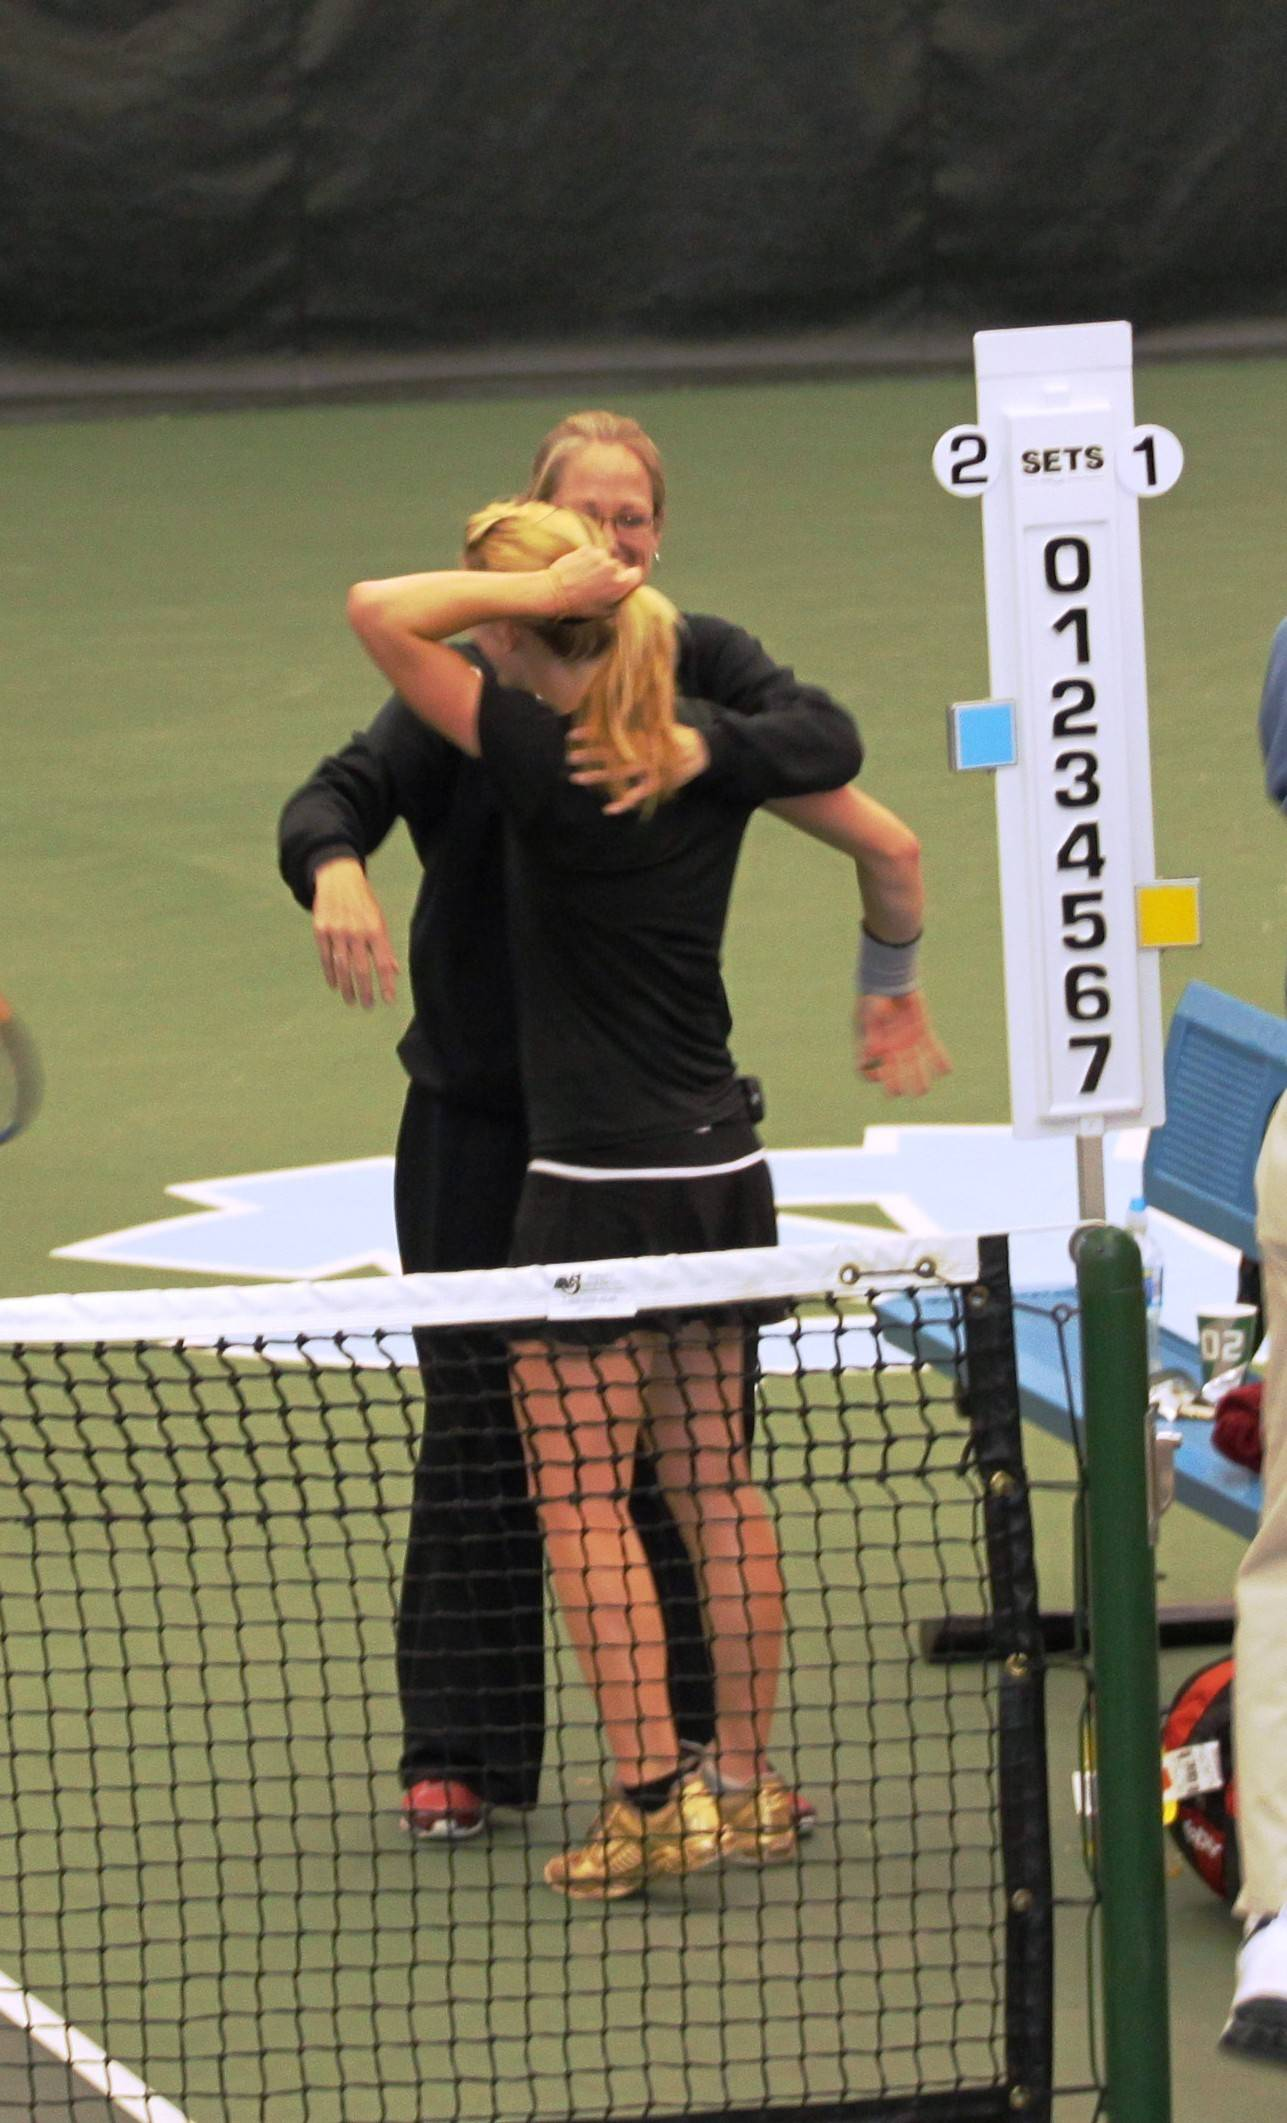 Head Coach Jennifer Hyde gives Ruth Seaborne a hug after clinching the match.